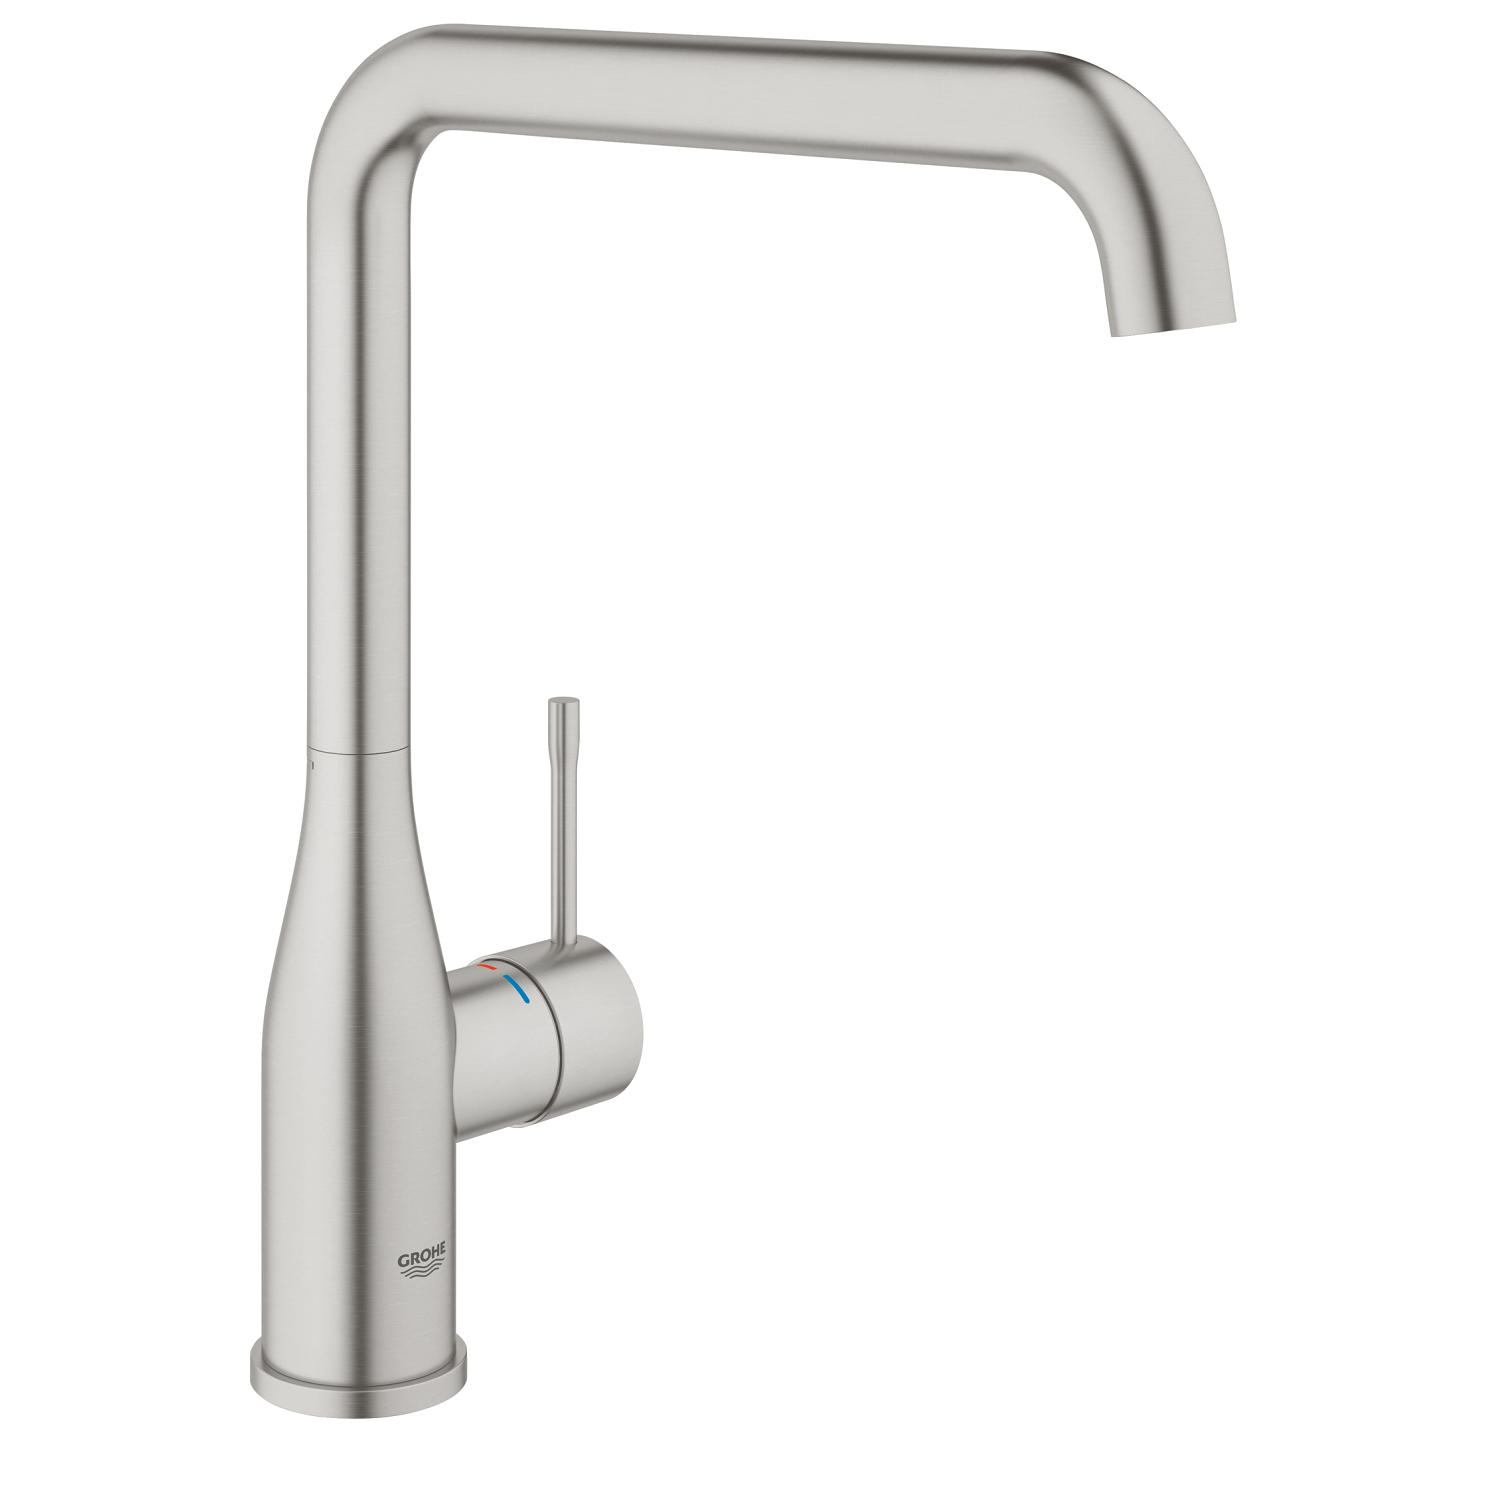 GROHE Essence Single lever kitchen